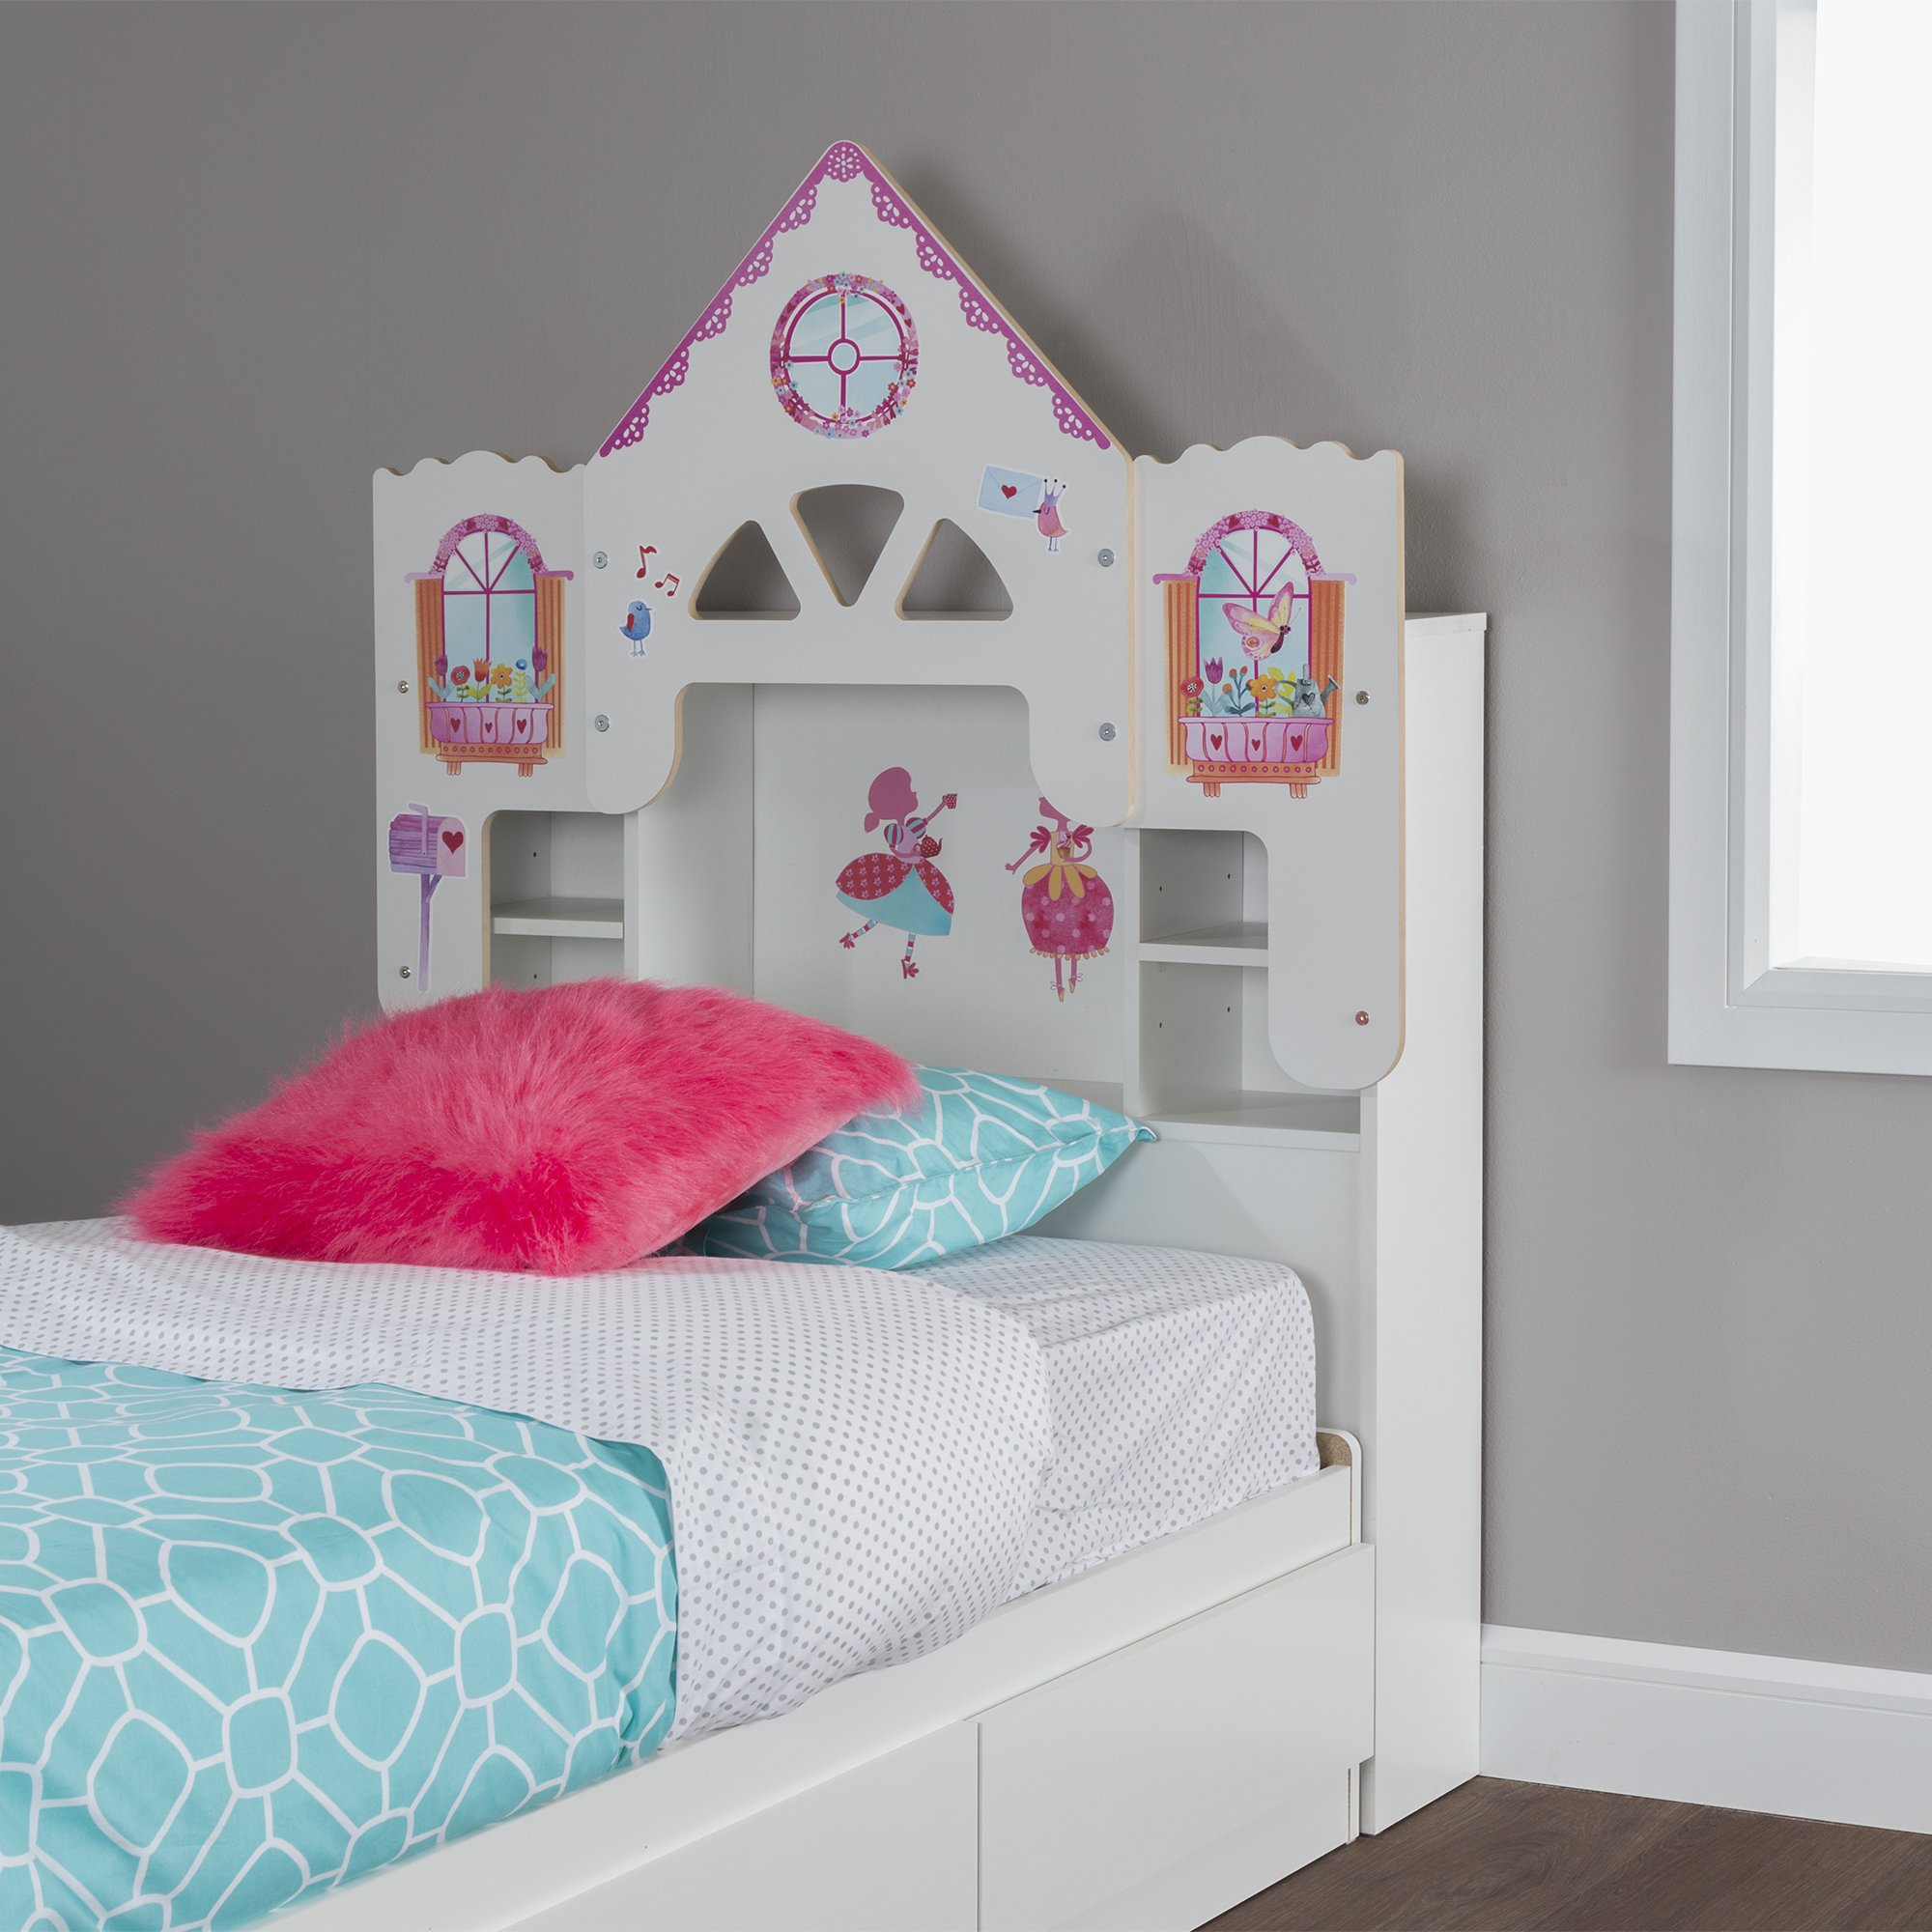 South Shore 39'' Dollhouse Themed Vito Bookcase Headboard with Decals, Twin, Pure White